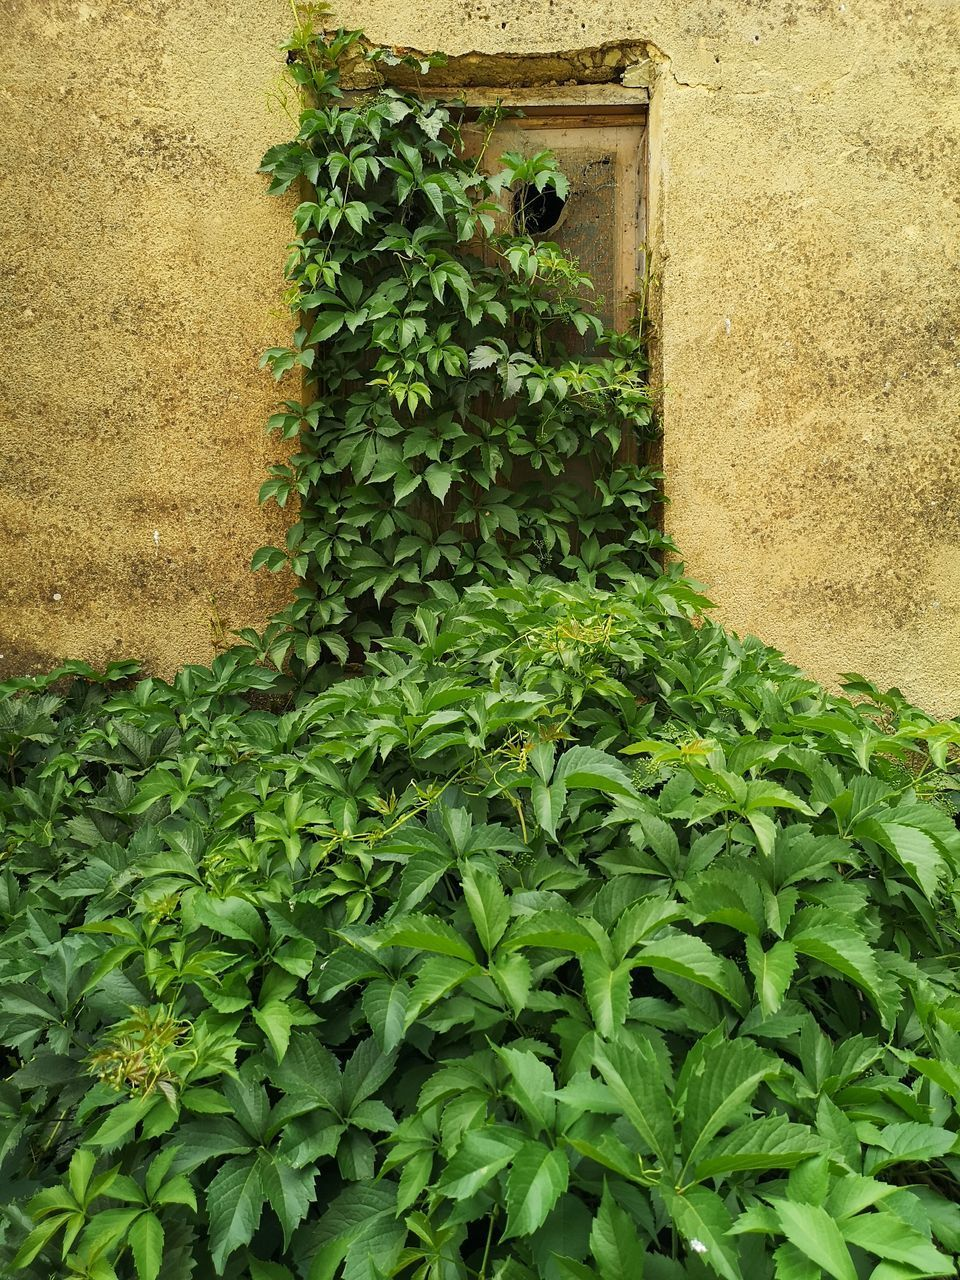 LOW ANGLE VIEW OF IVY ON WALL